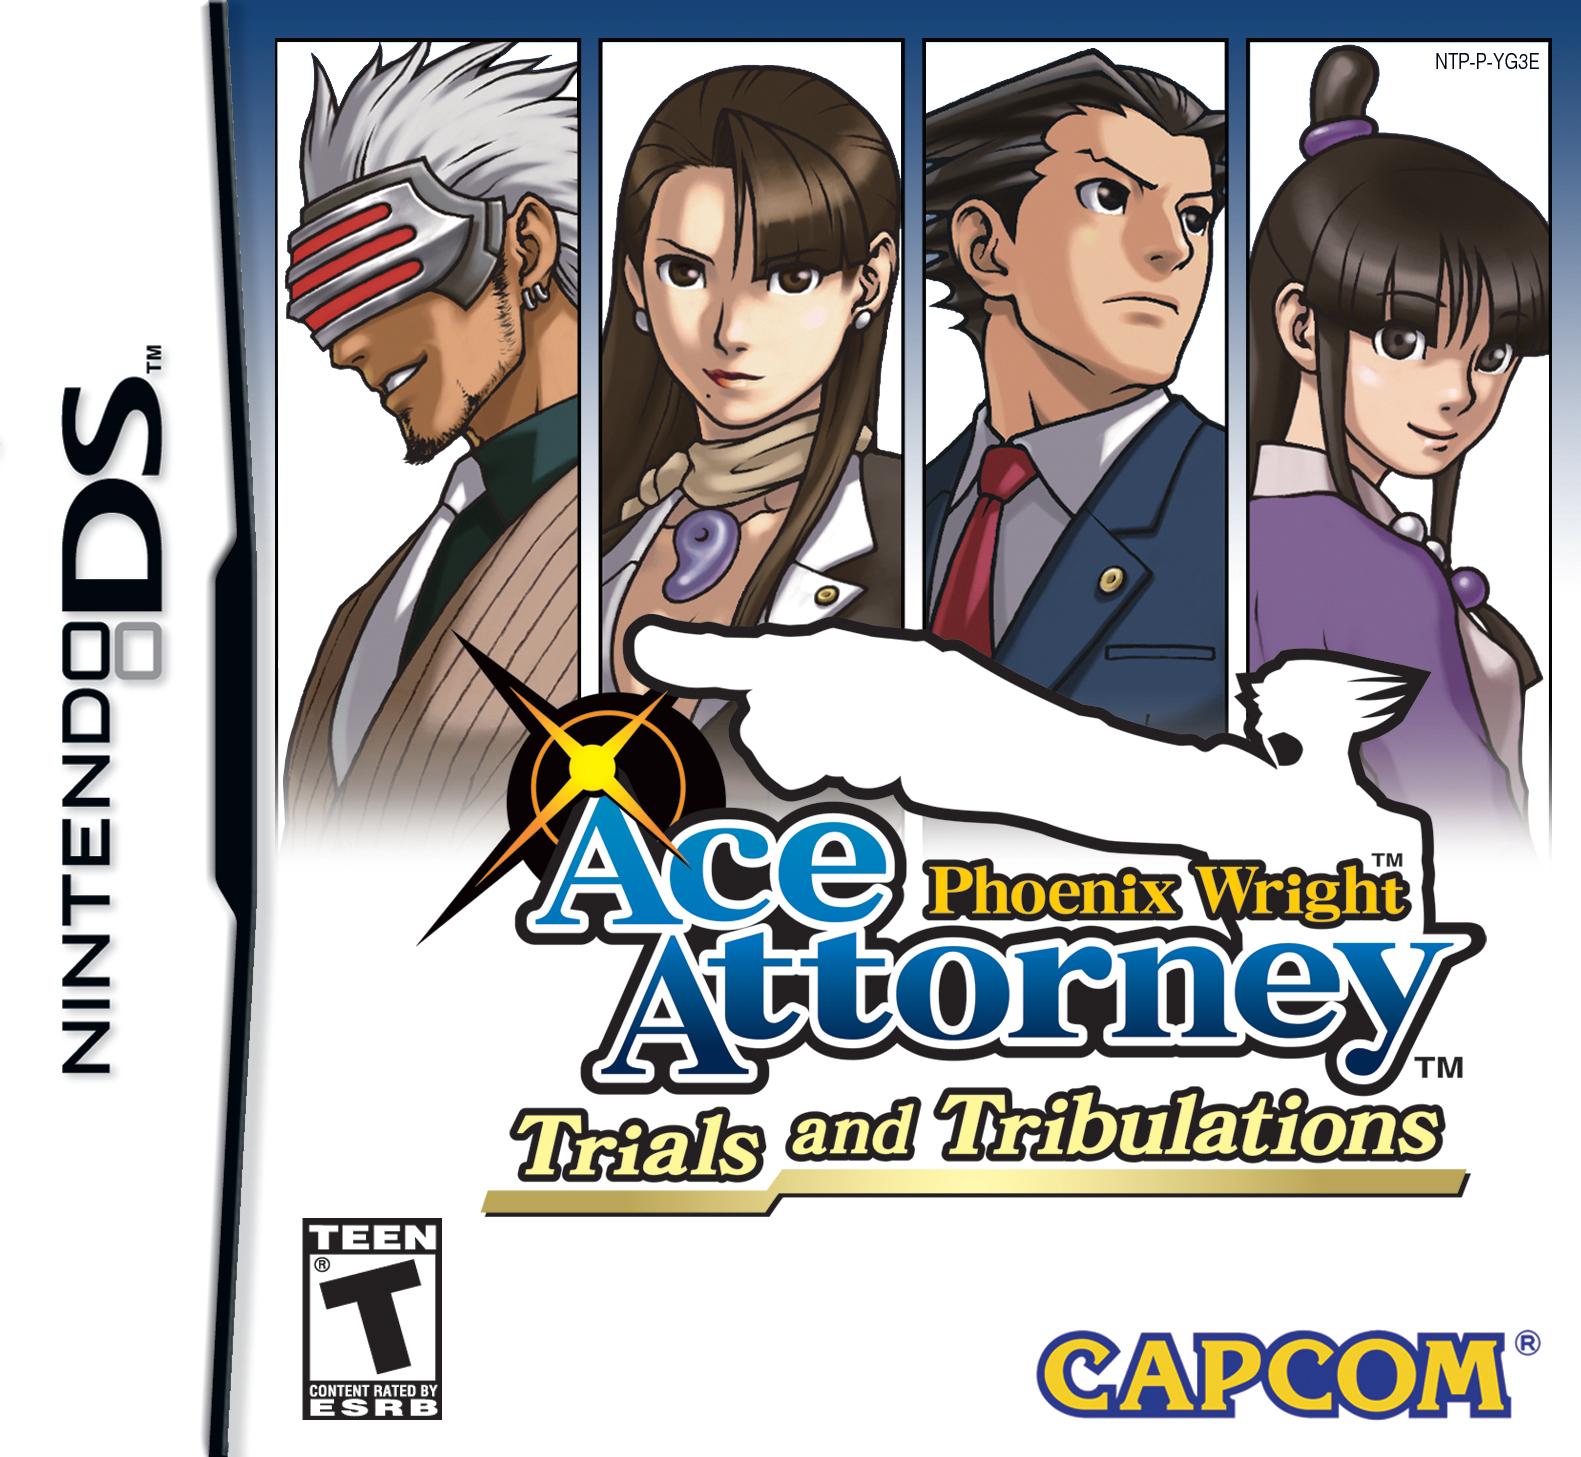 Phoenix Wright: Ace Attorney Backgrounds, Compatible - PC, Mobile, Gadgets| 1581x1457 px